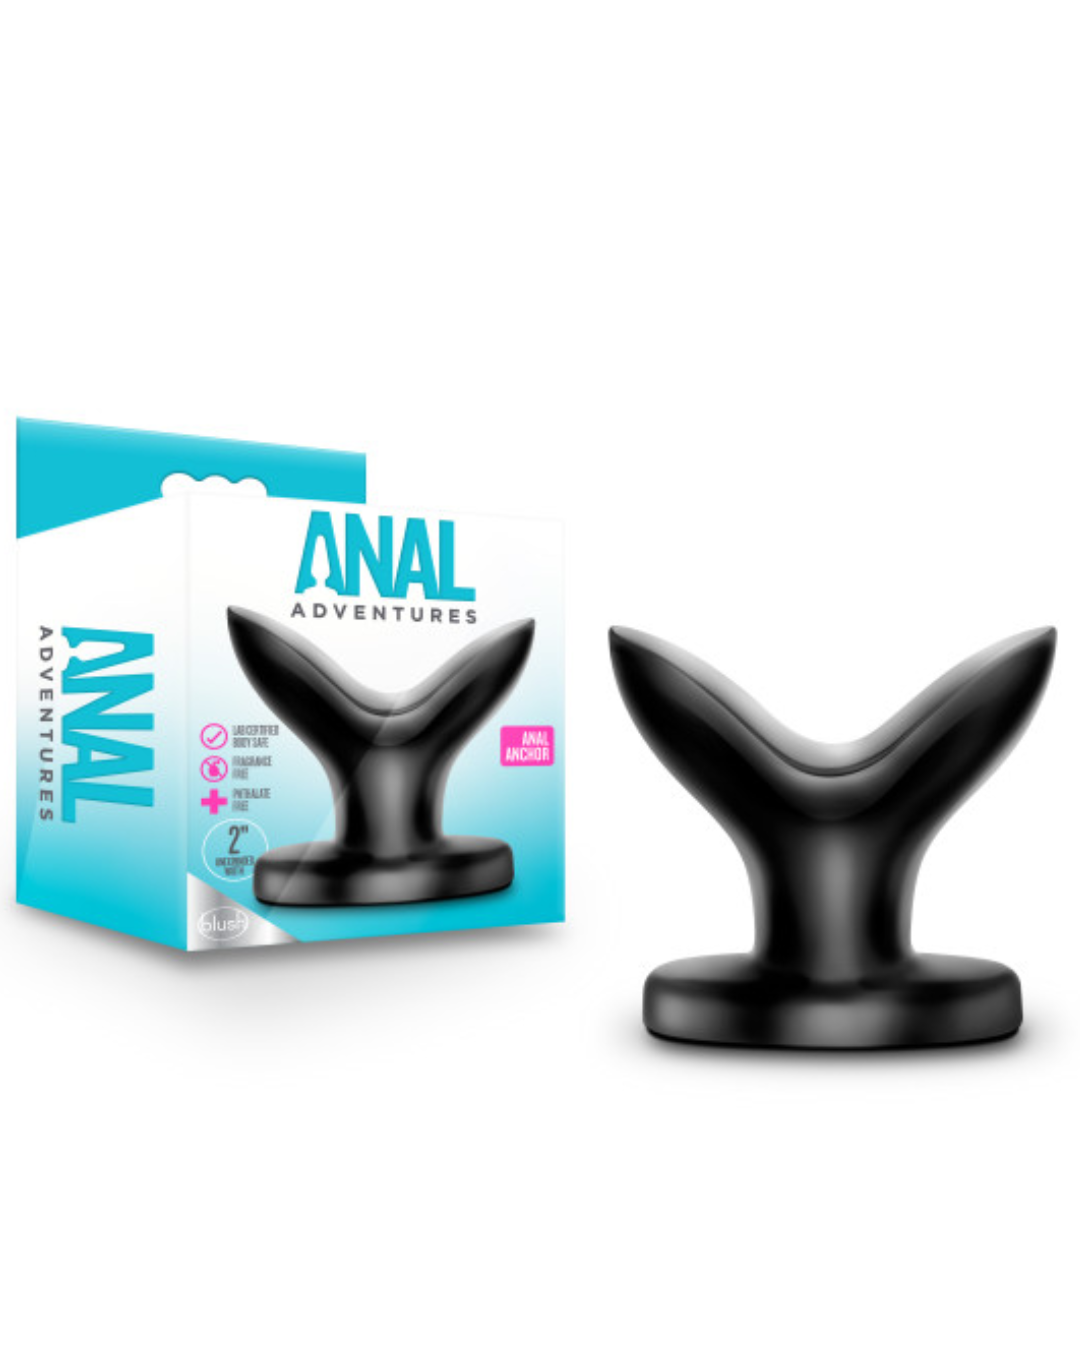 Anal Adventures Anal Anchor Plug by Blush Novelties with box